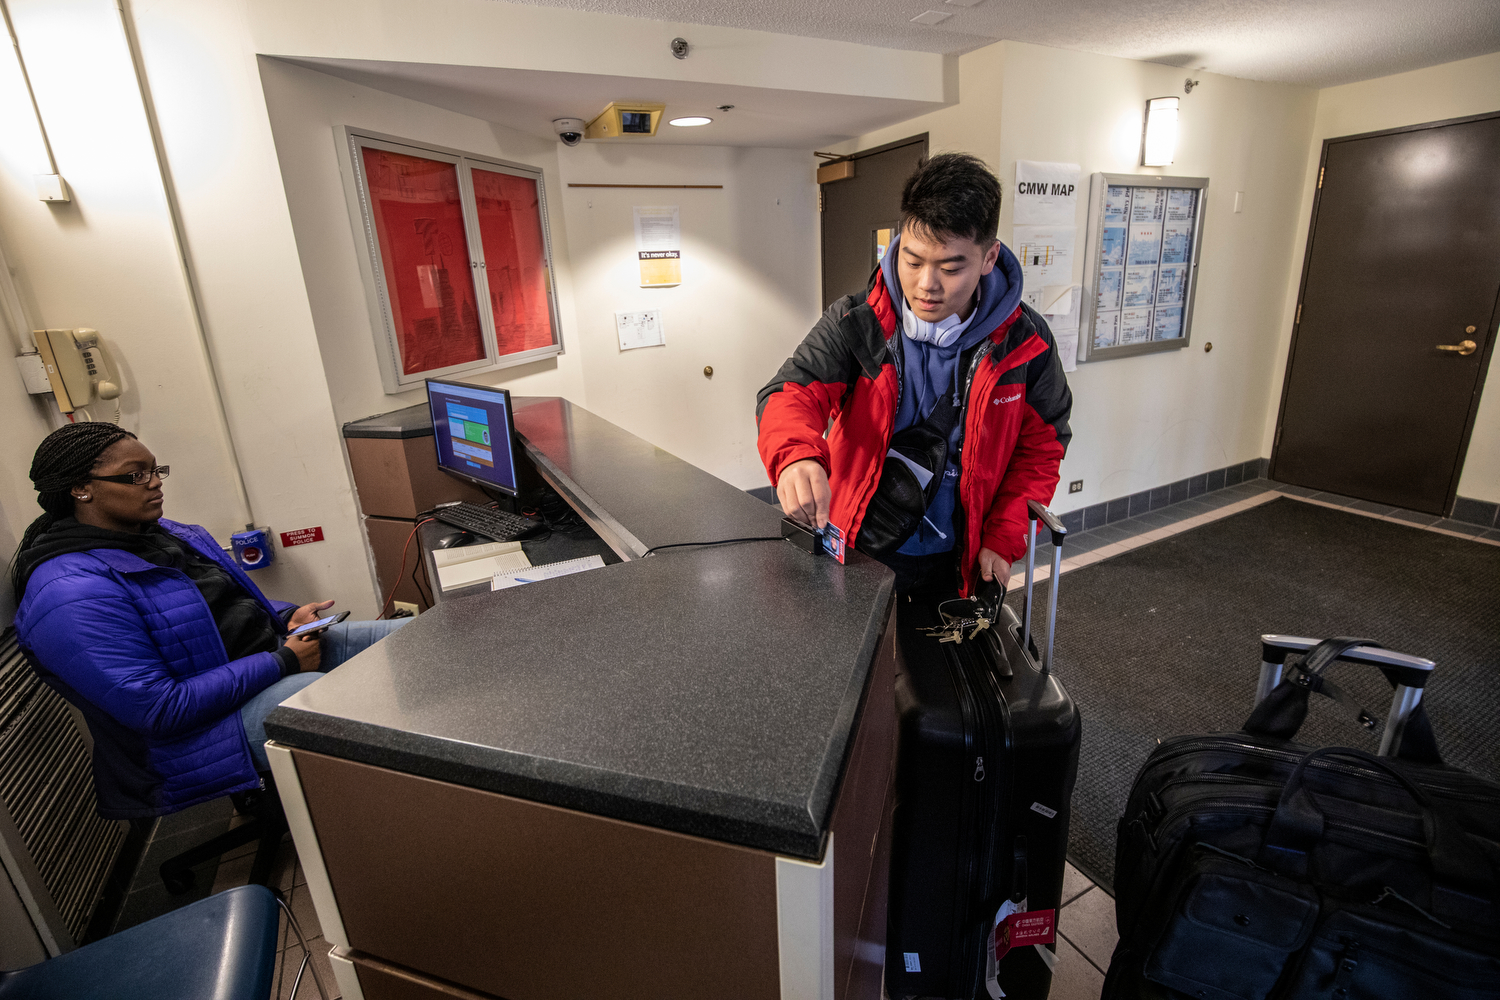 Freshmen Yuchen Shi, right, checks back into the dorms at Student Residence and Commons West on the first day of spring semester after returning from his home in Shanghai, China.